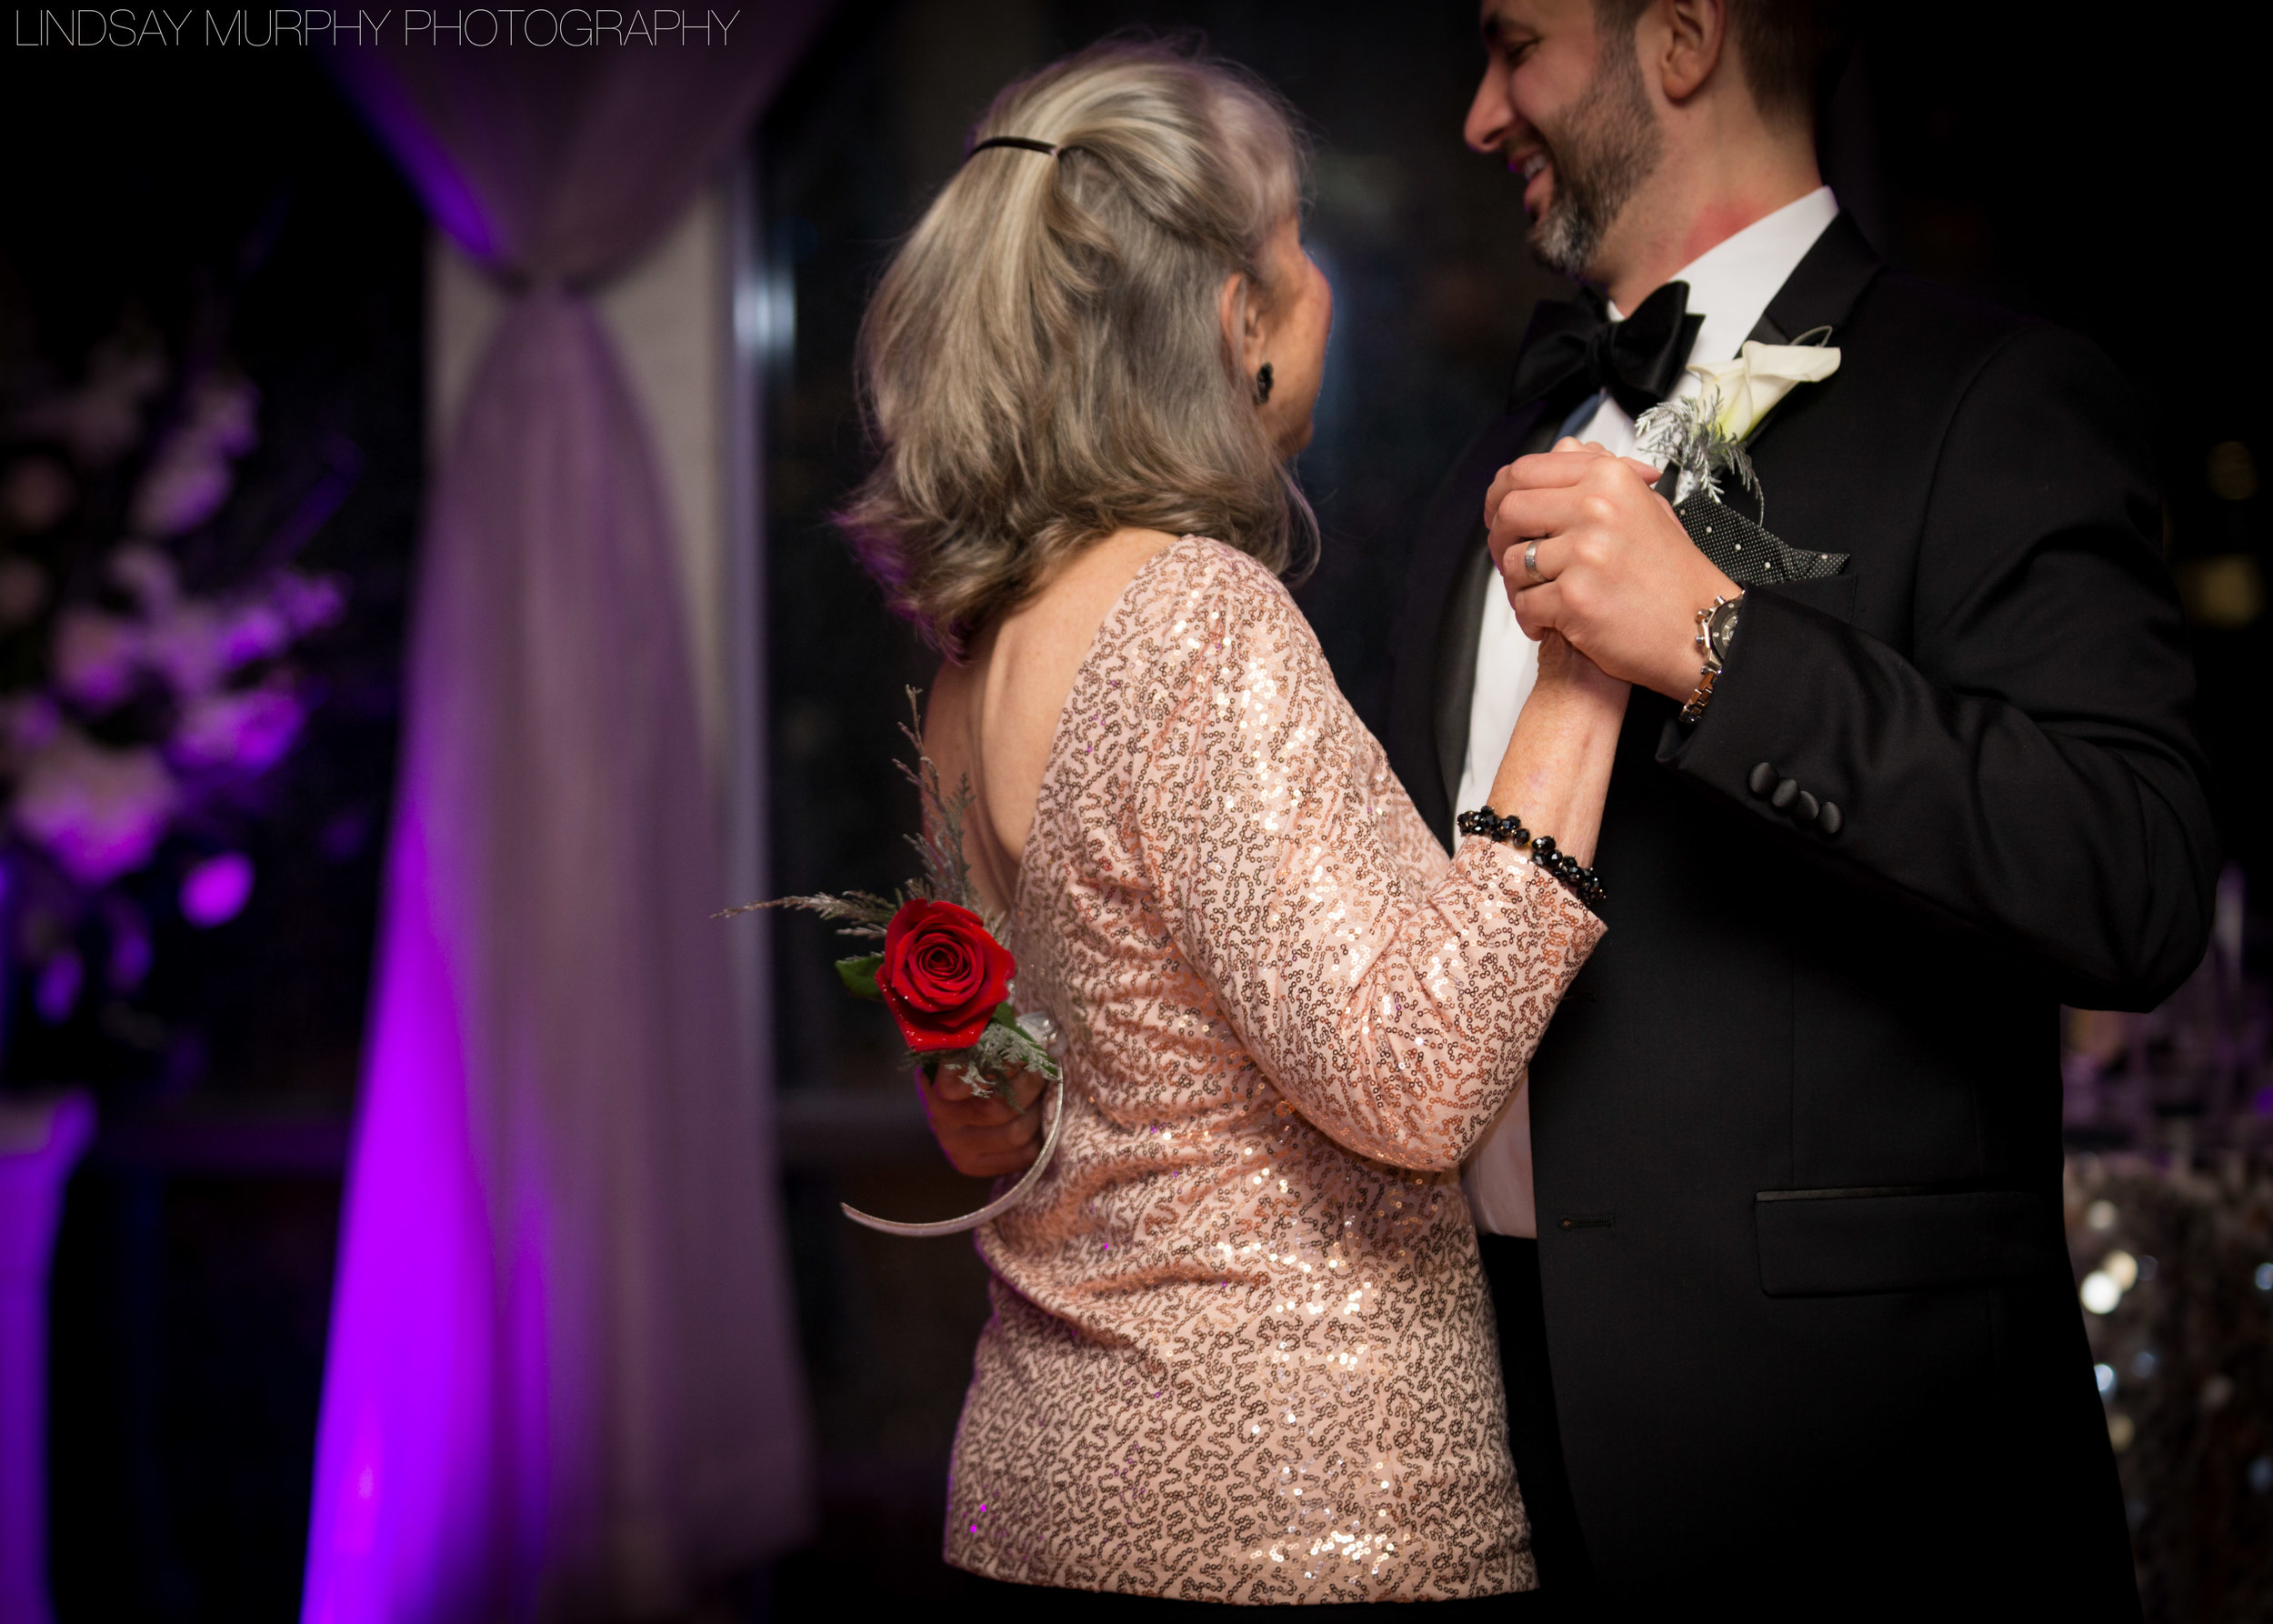 boston_wedding_photographer-522.jpg